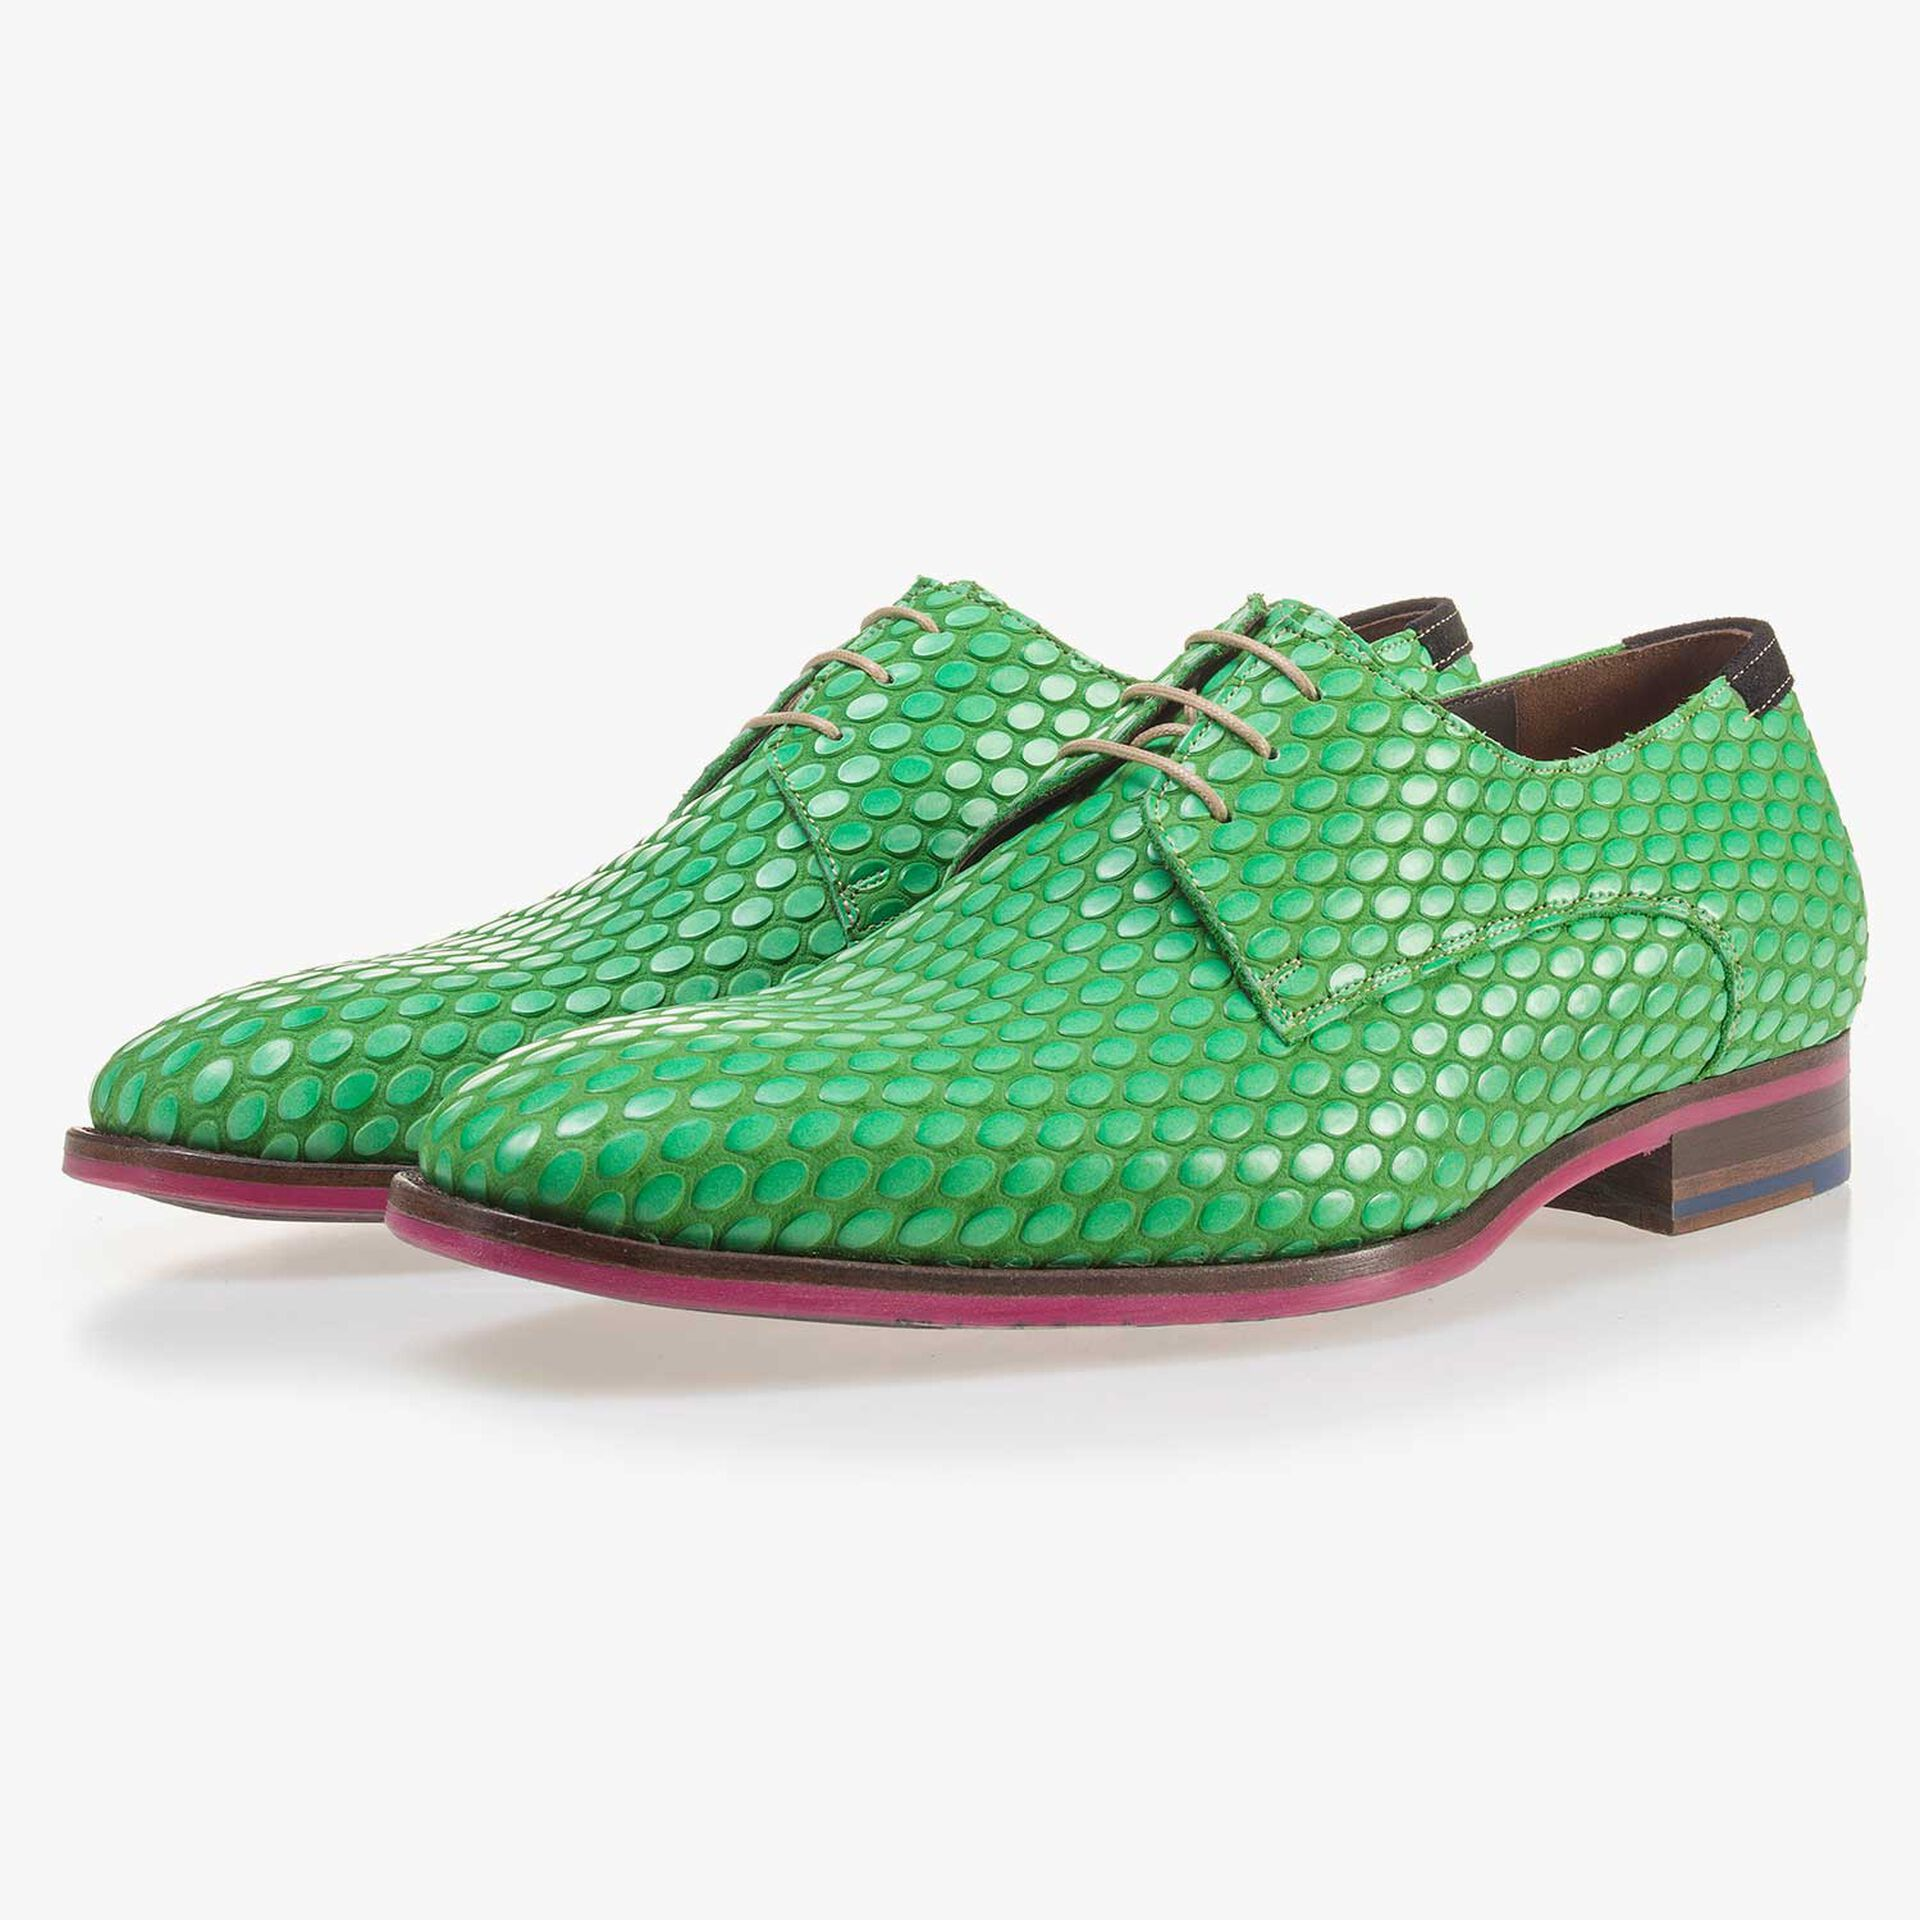 Premium green leather lace shoe